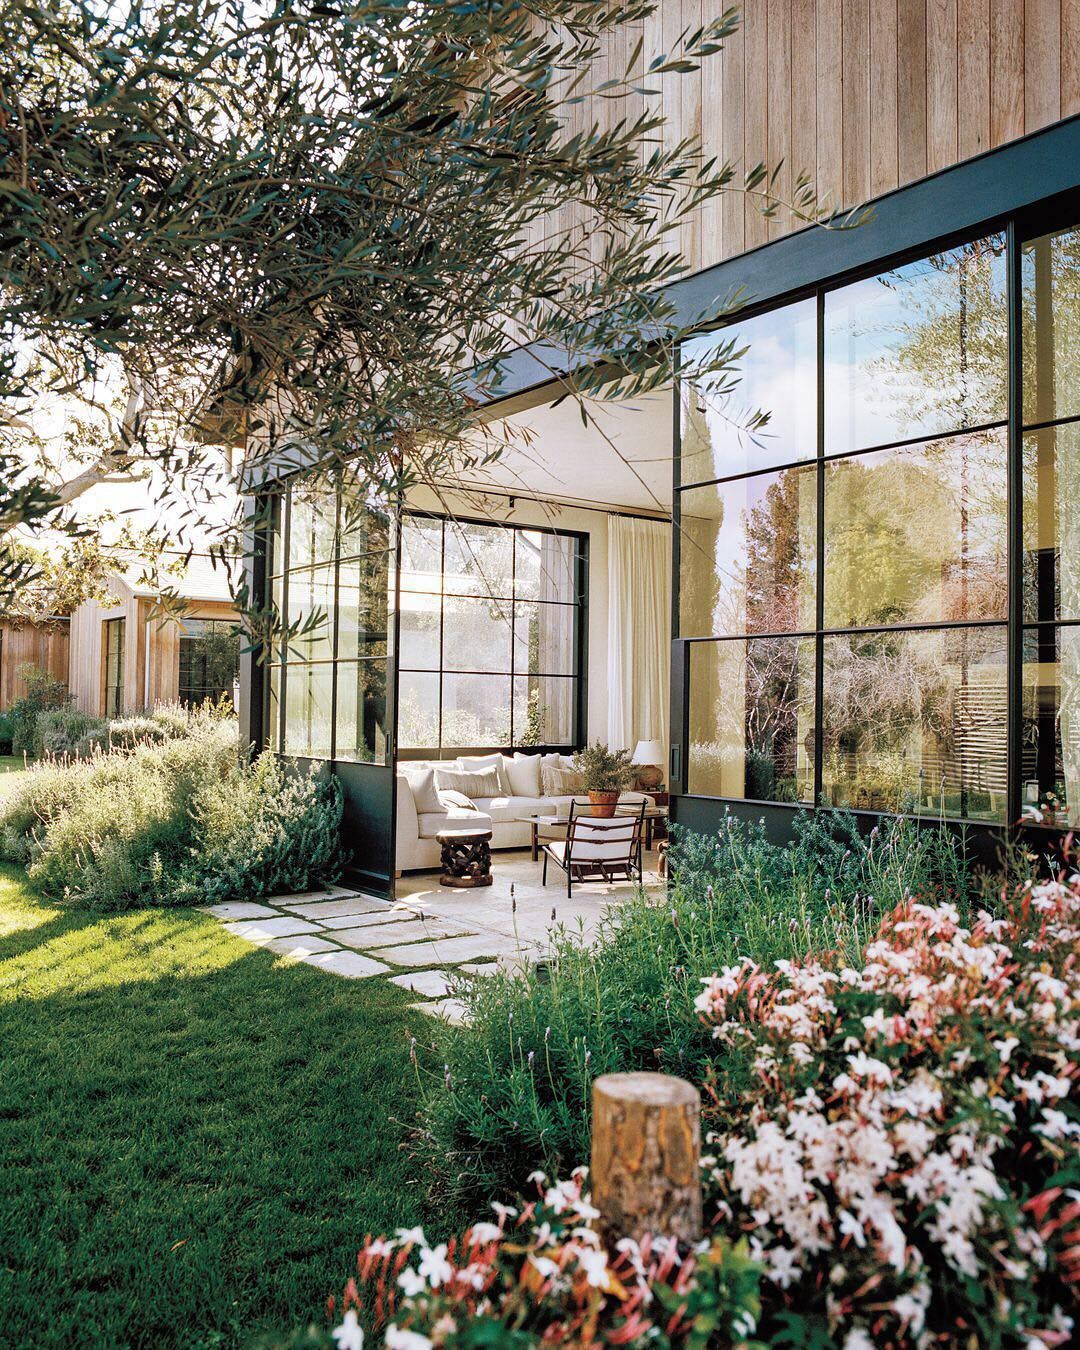 868 336 Exterior Home Design Ideas Remodel Pictures: Architect Howard Backen Reimagined Carolwood (The Grey Estate). Like The Idea Of Indoor Patio